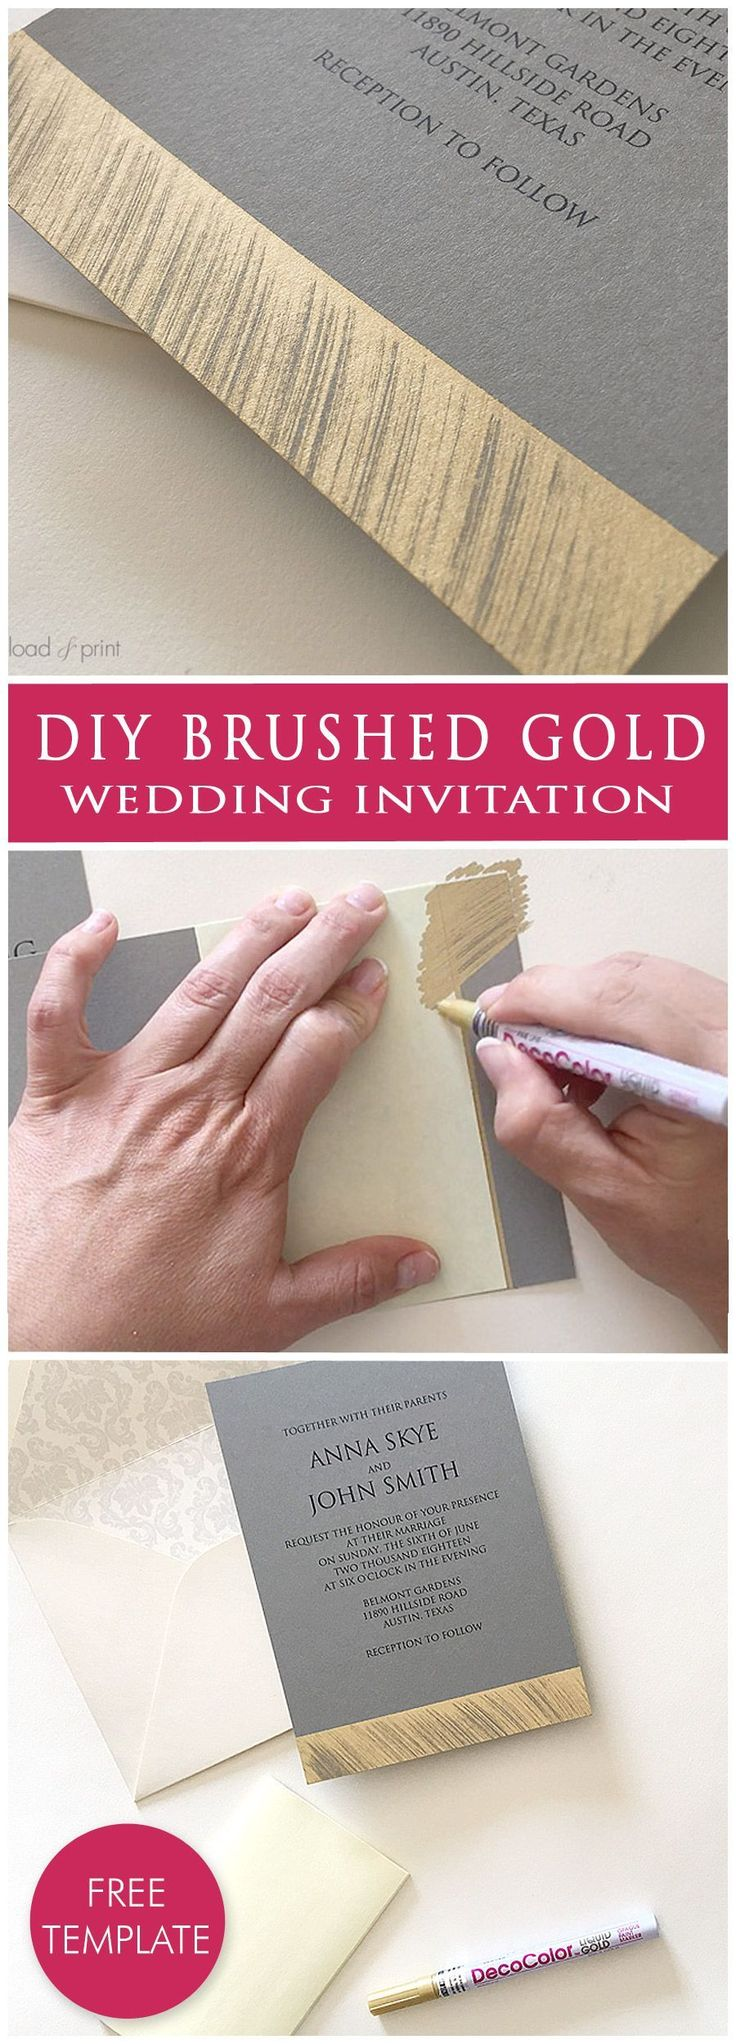 DIY brushed gold wedding invitation Learn how